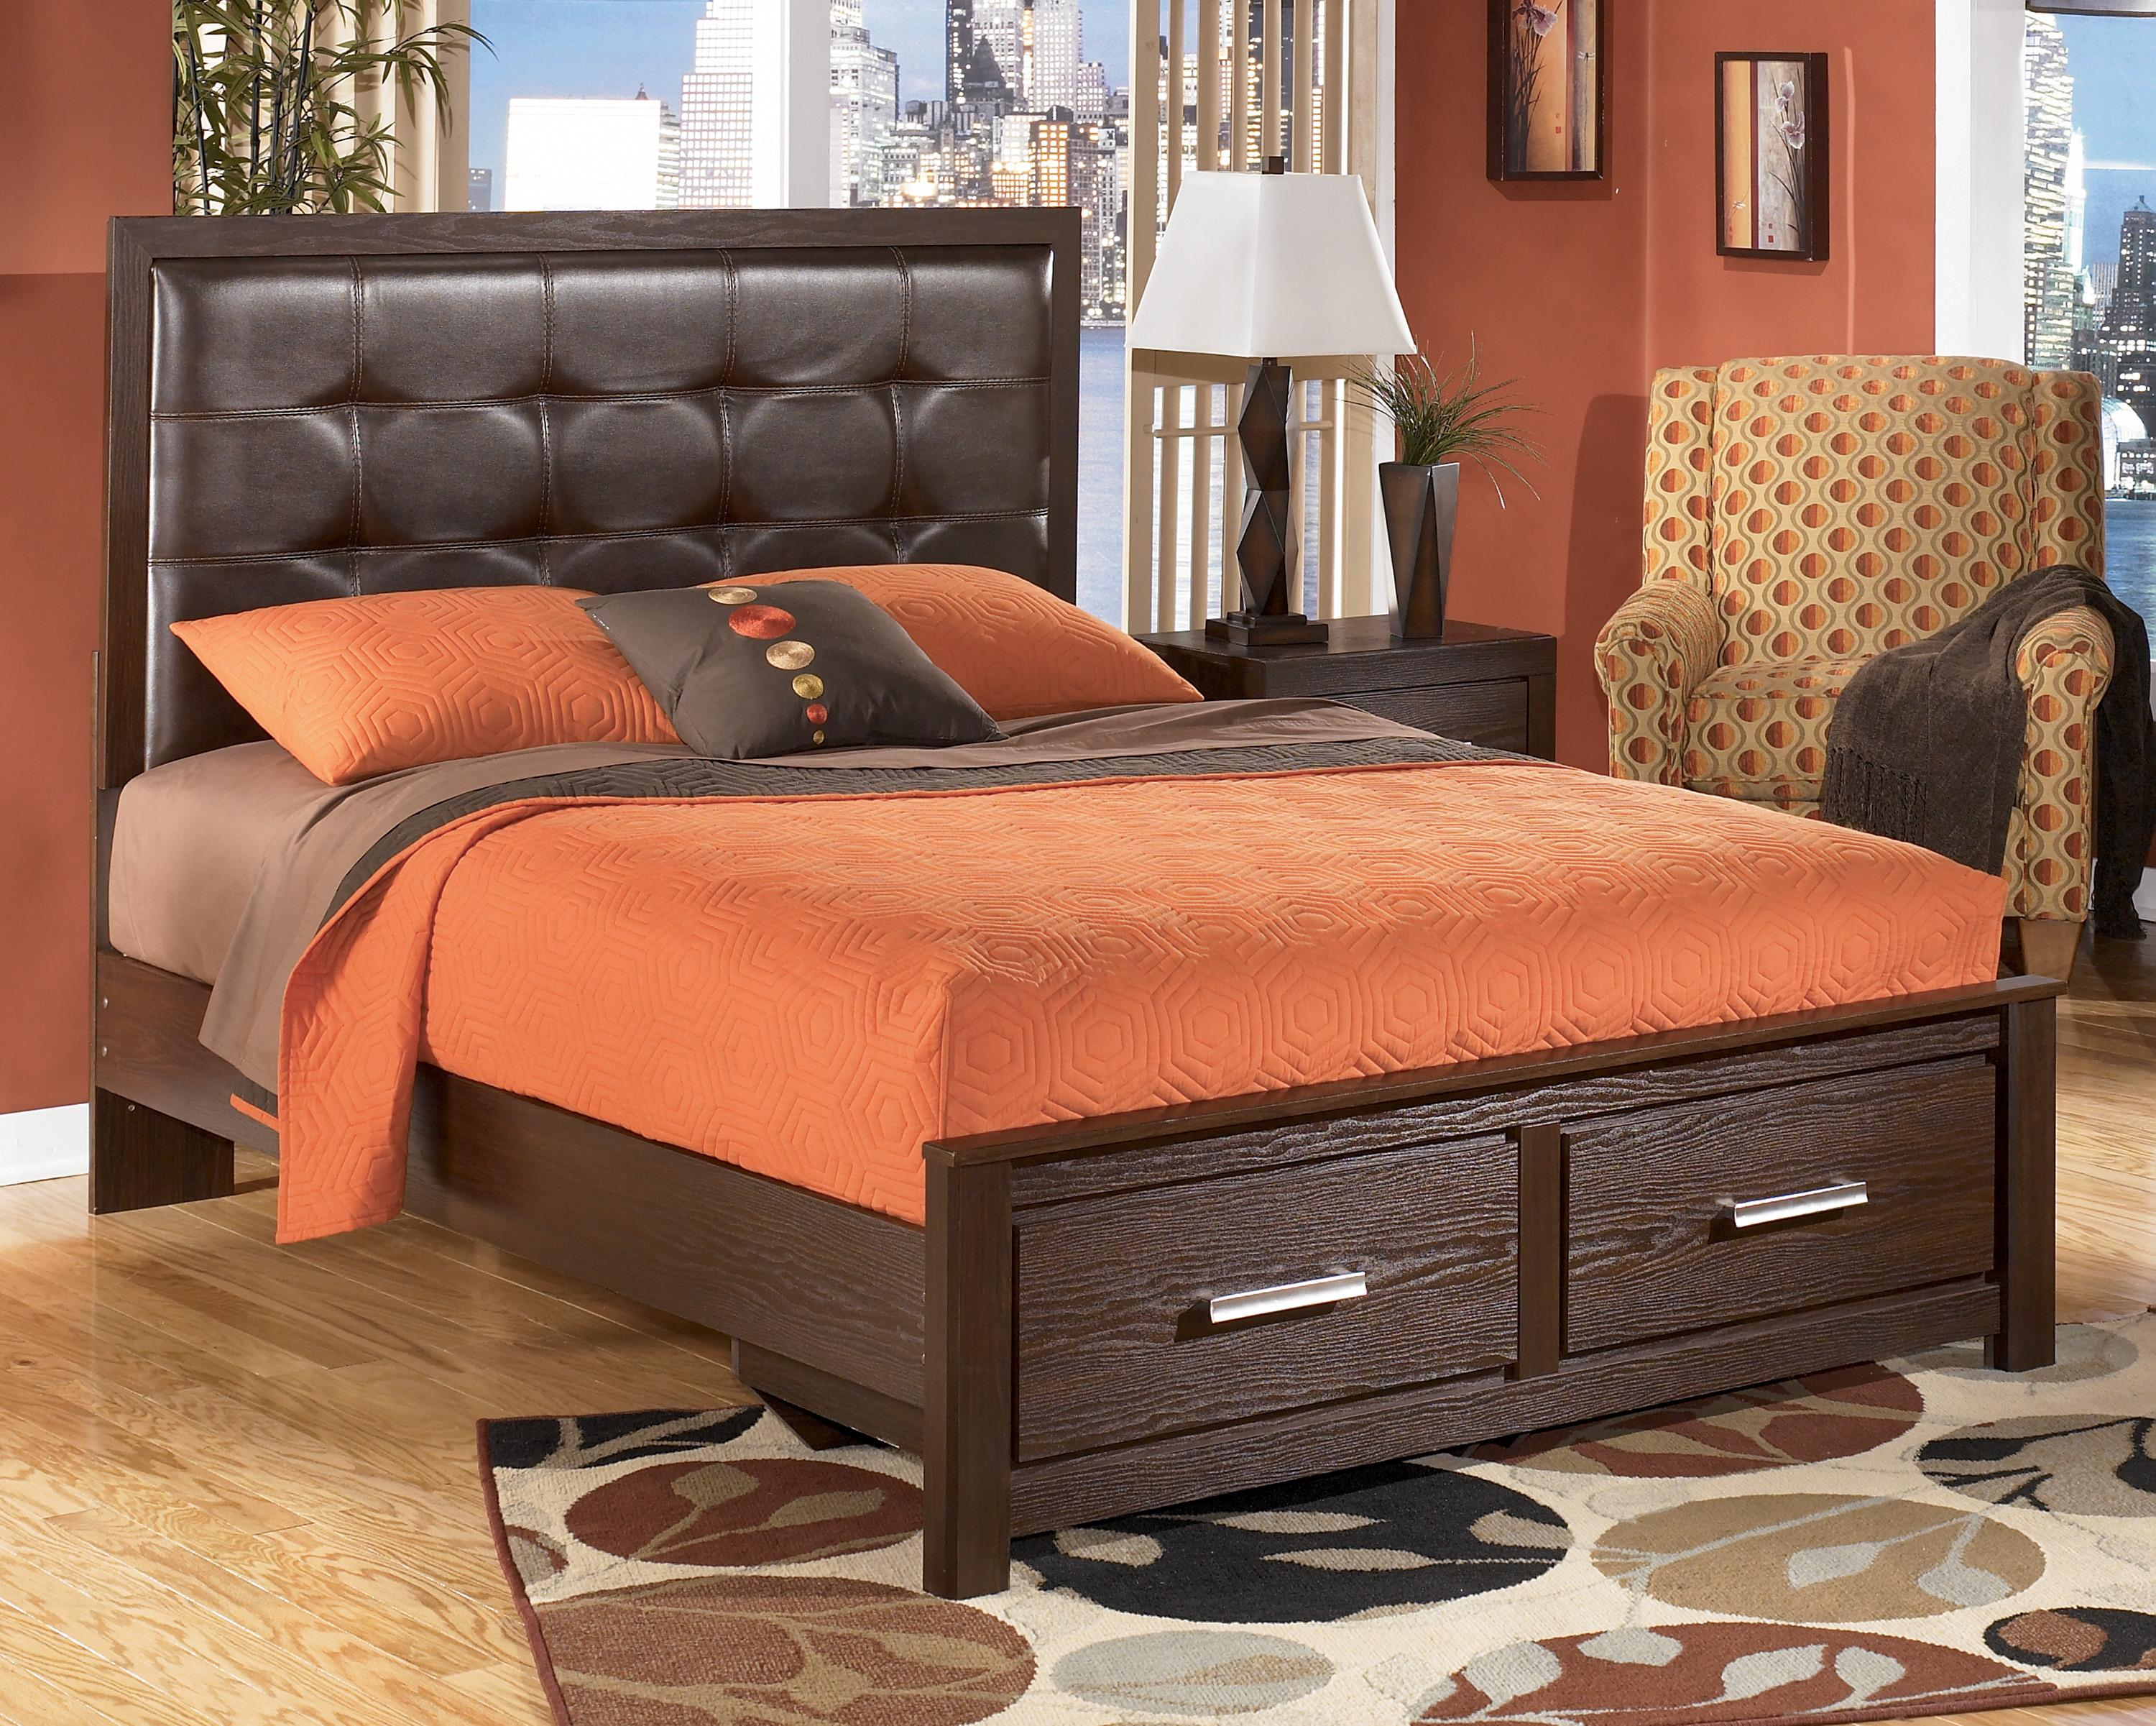 Signature Design by Ashley Aleydis Queen Upholstered Panel Storage Bed - Item Number: B165-57+54S+95+B100-13